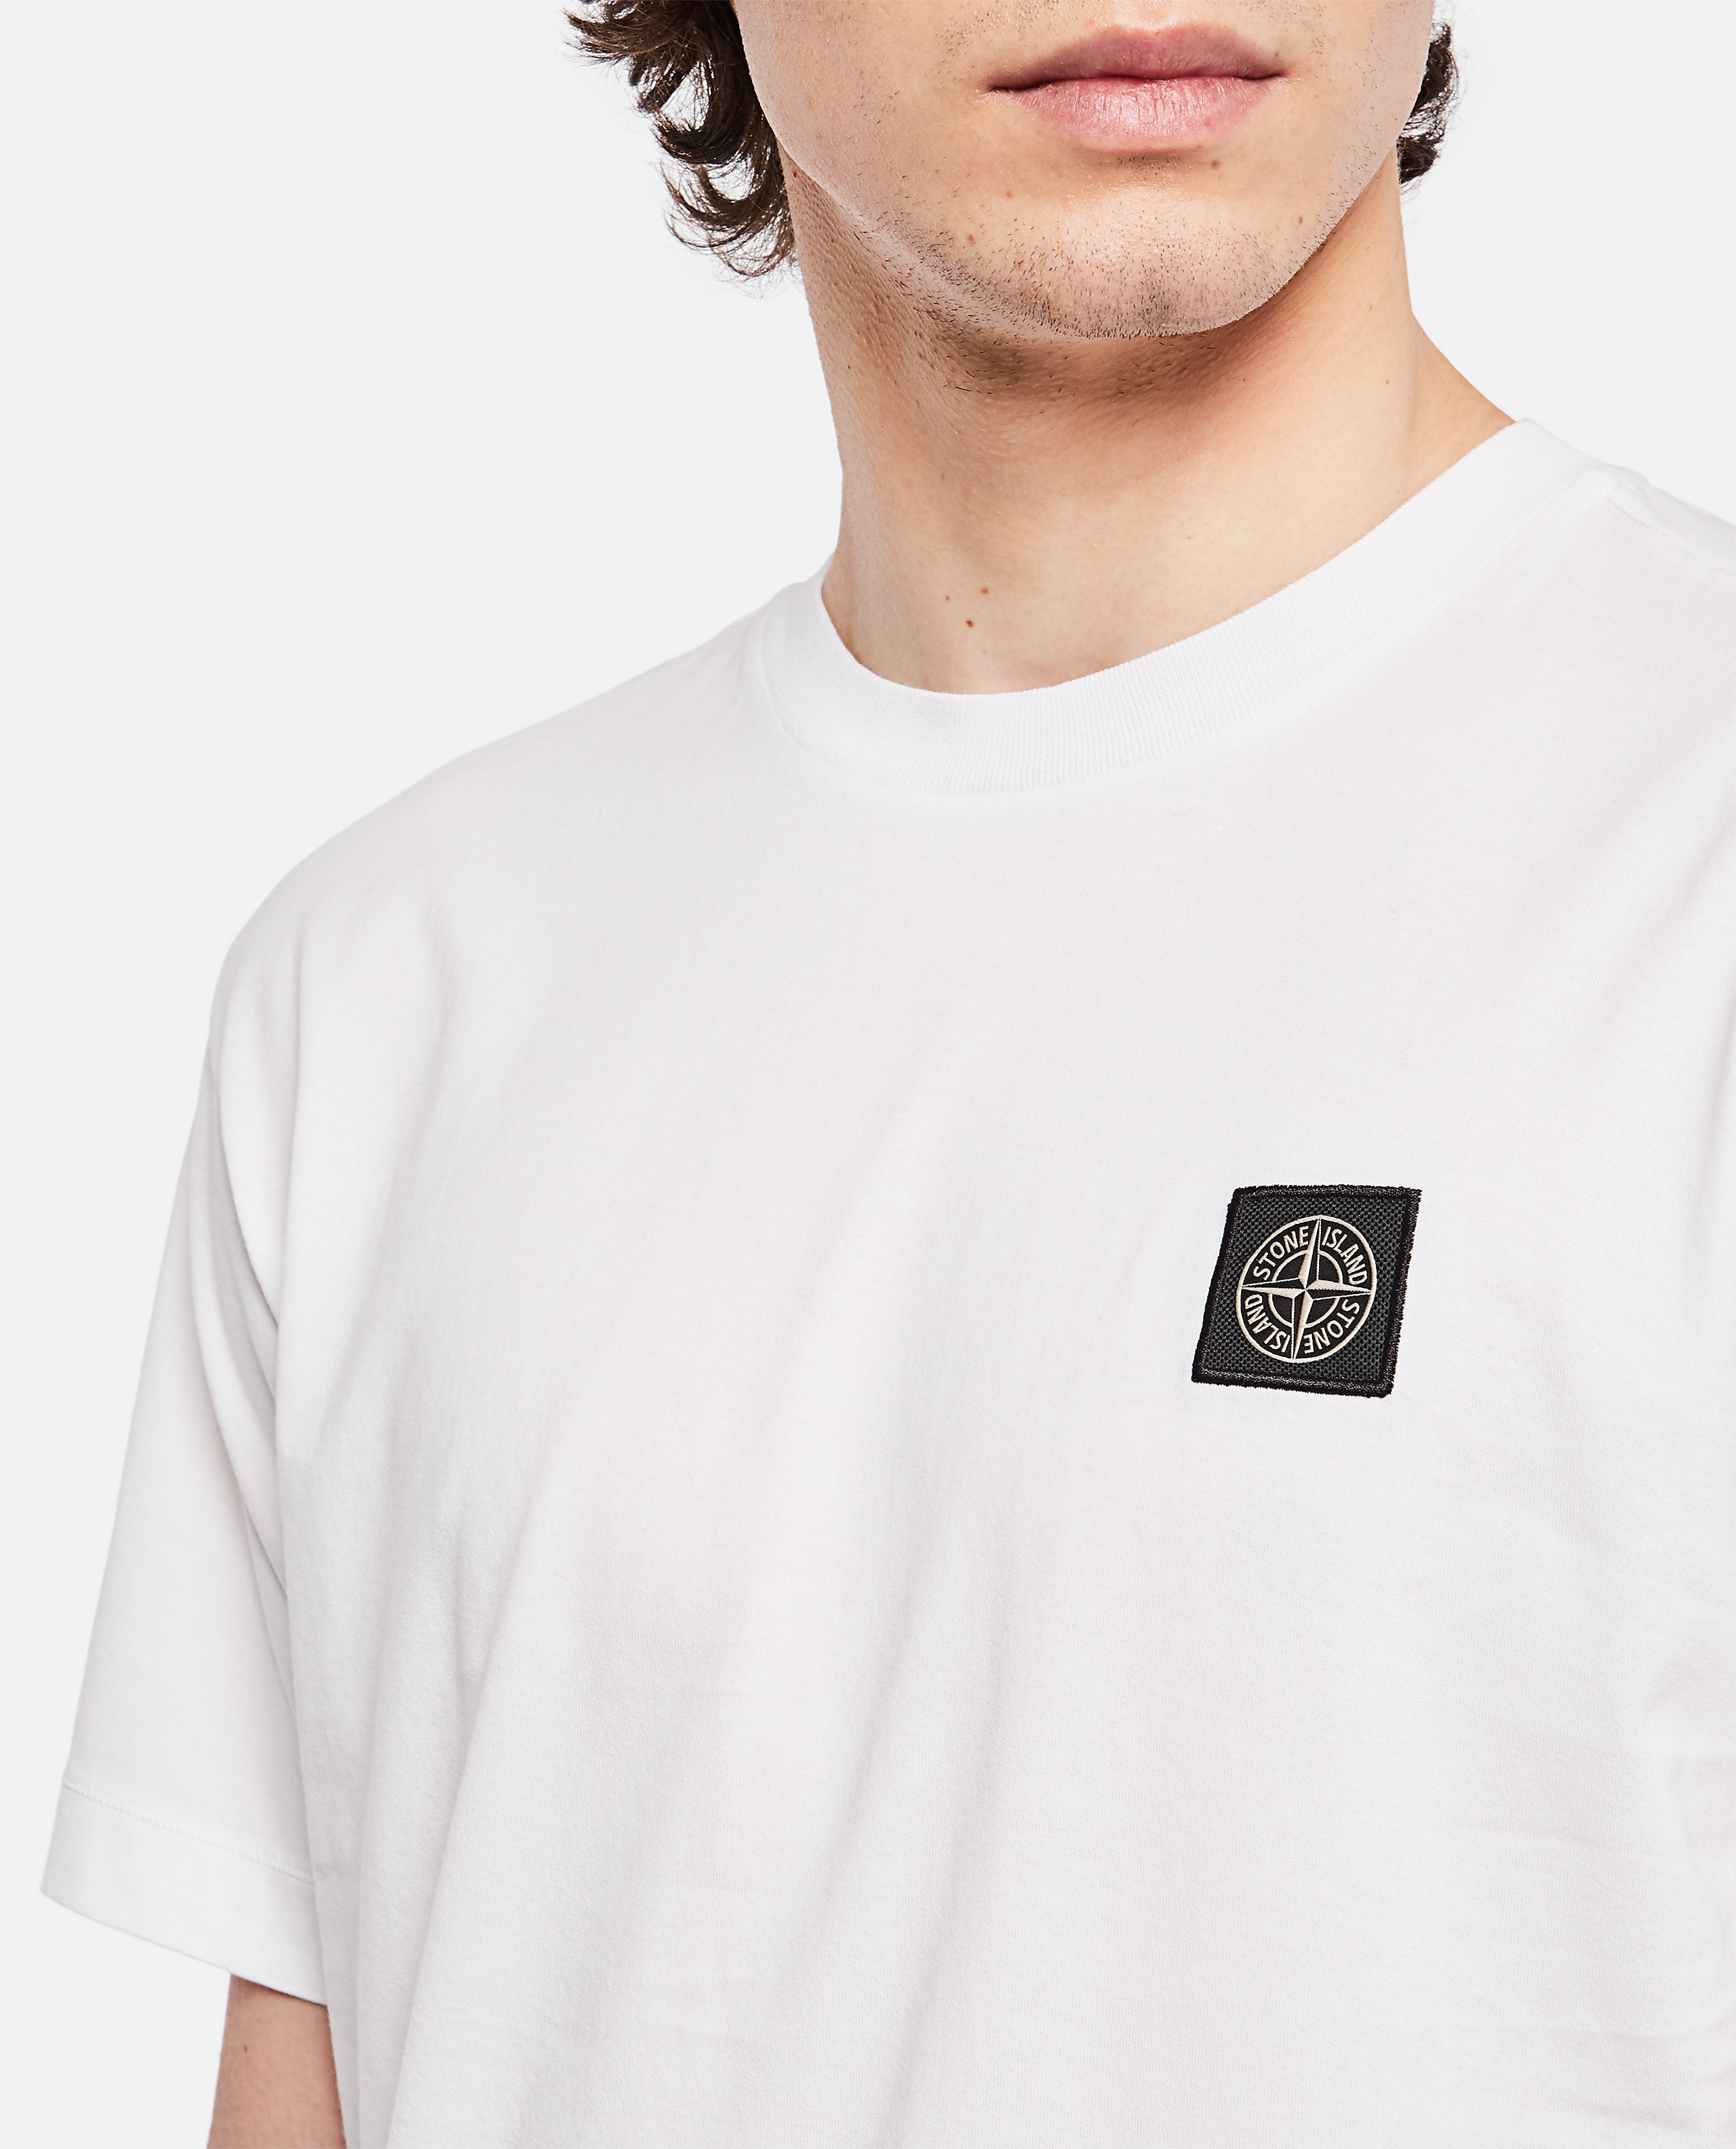 Cotton jersey T-shirt Men Stone Island 000292700043135 4